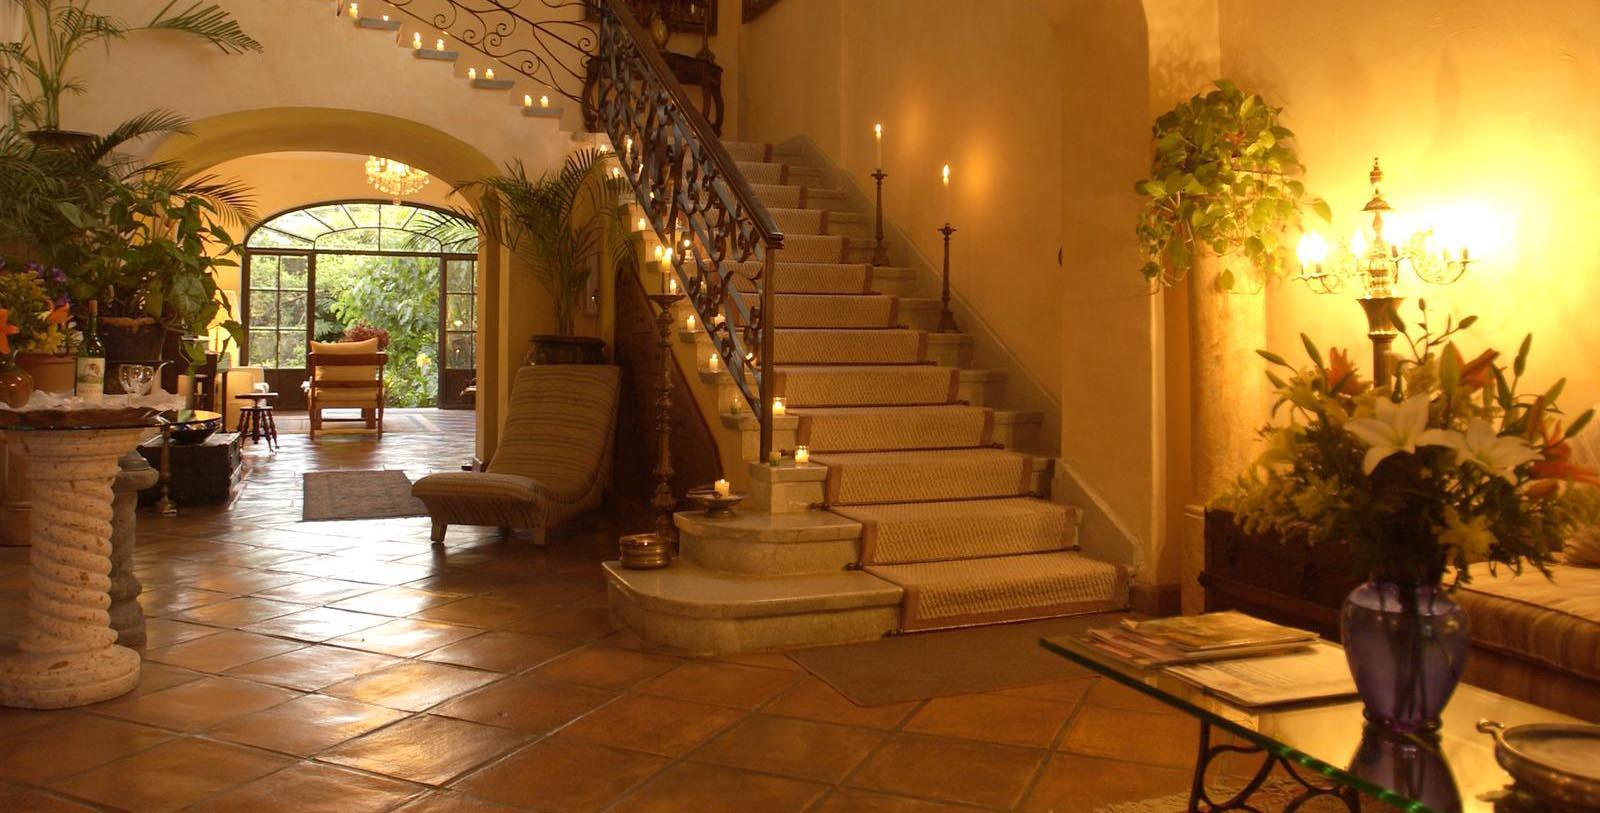 Image of Hotel Lobby and Staircase at Villa Ganz Boutique Hotel, 1930, Member of Historic Hotels Worldwide, in Guadalajara, Jalisco, Mexico, Discover